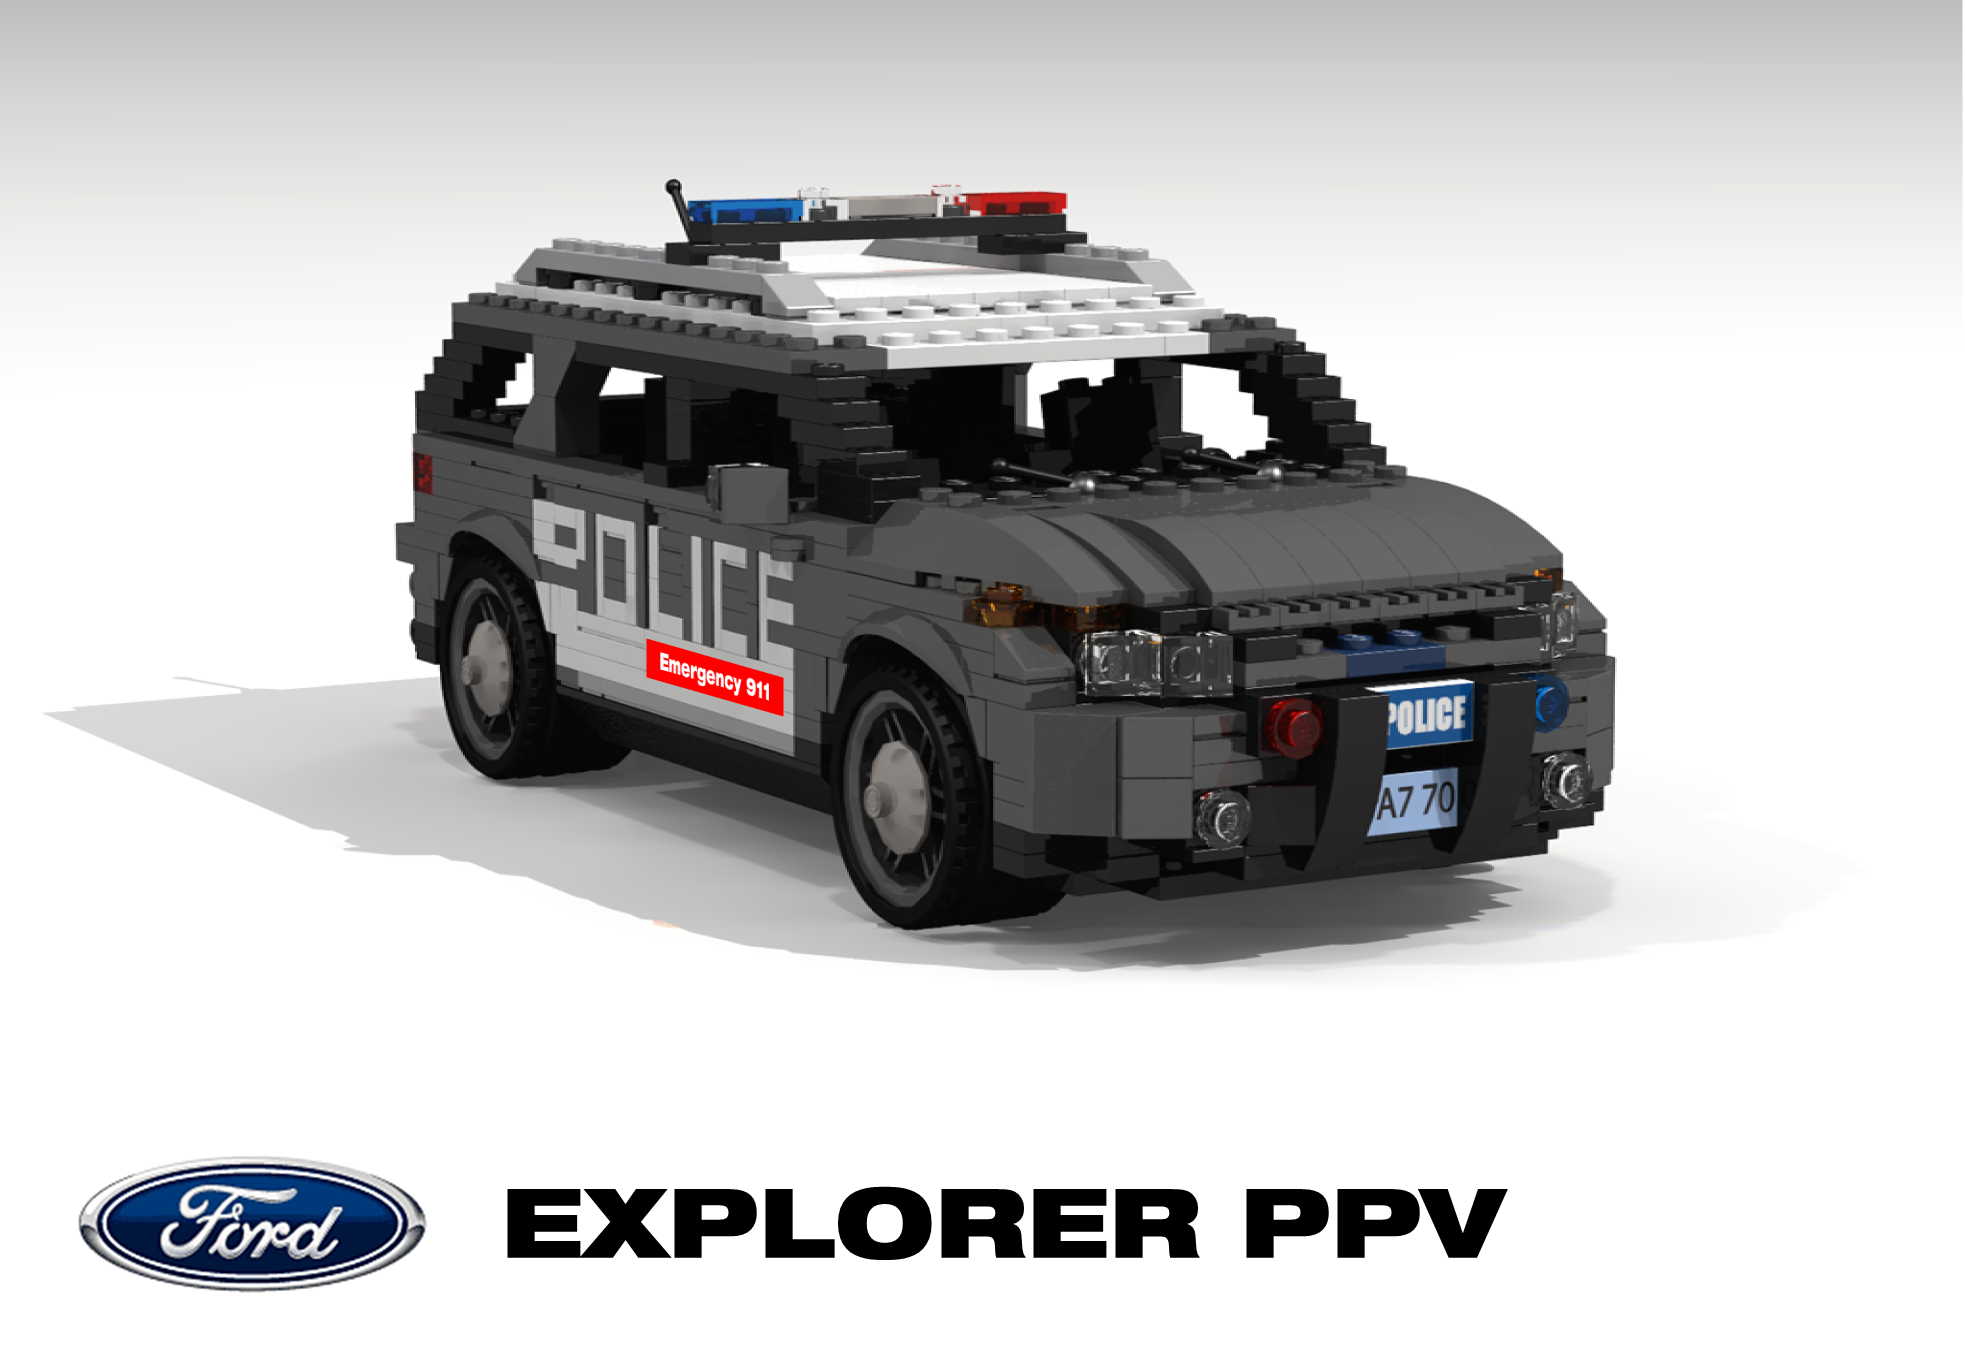 2011_ford_explorer_ppv.png